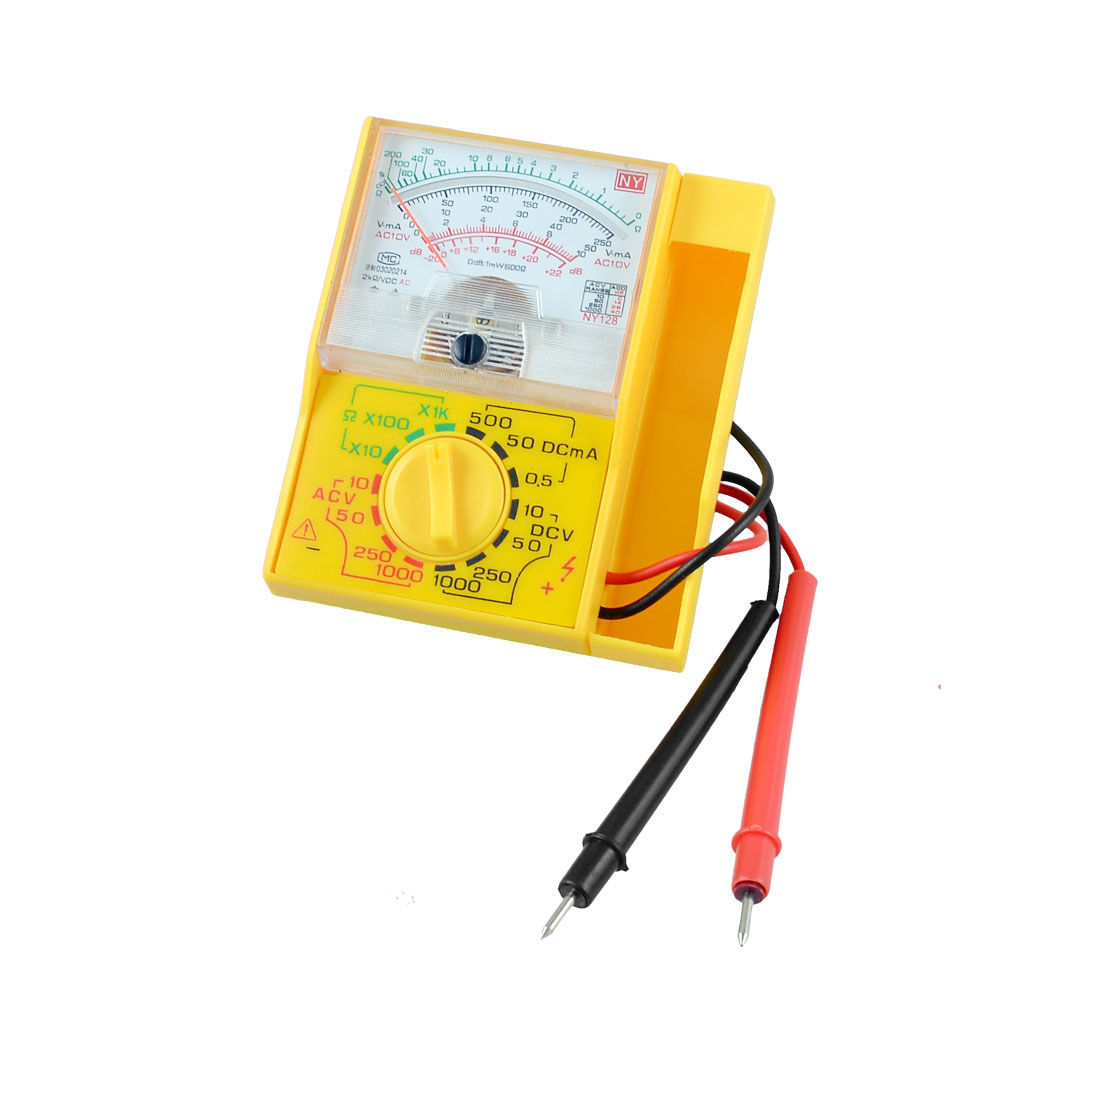 NY-128 Ohmmeter Voltmeter Pocket Analog Multitester Tester Instrument Yellow